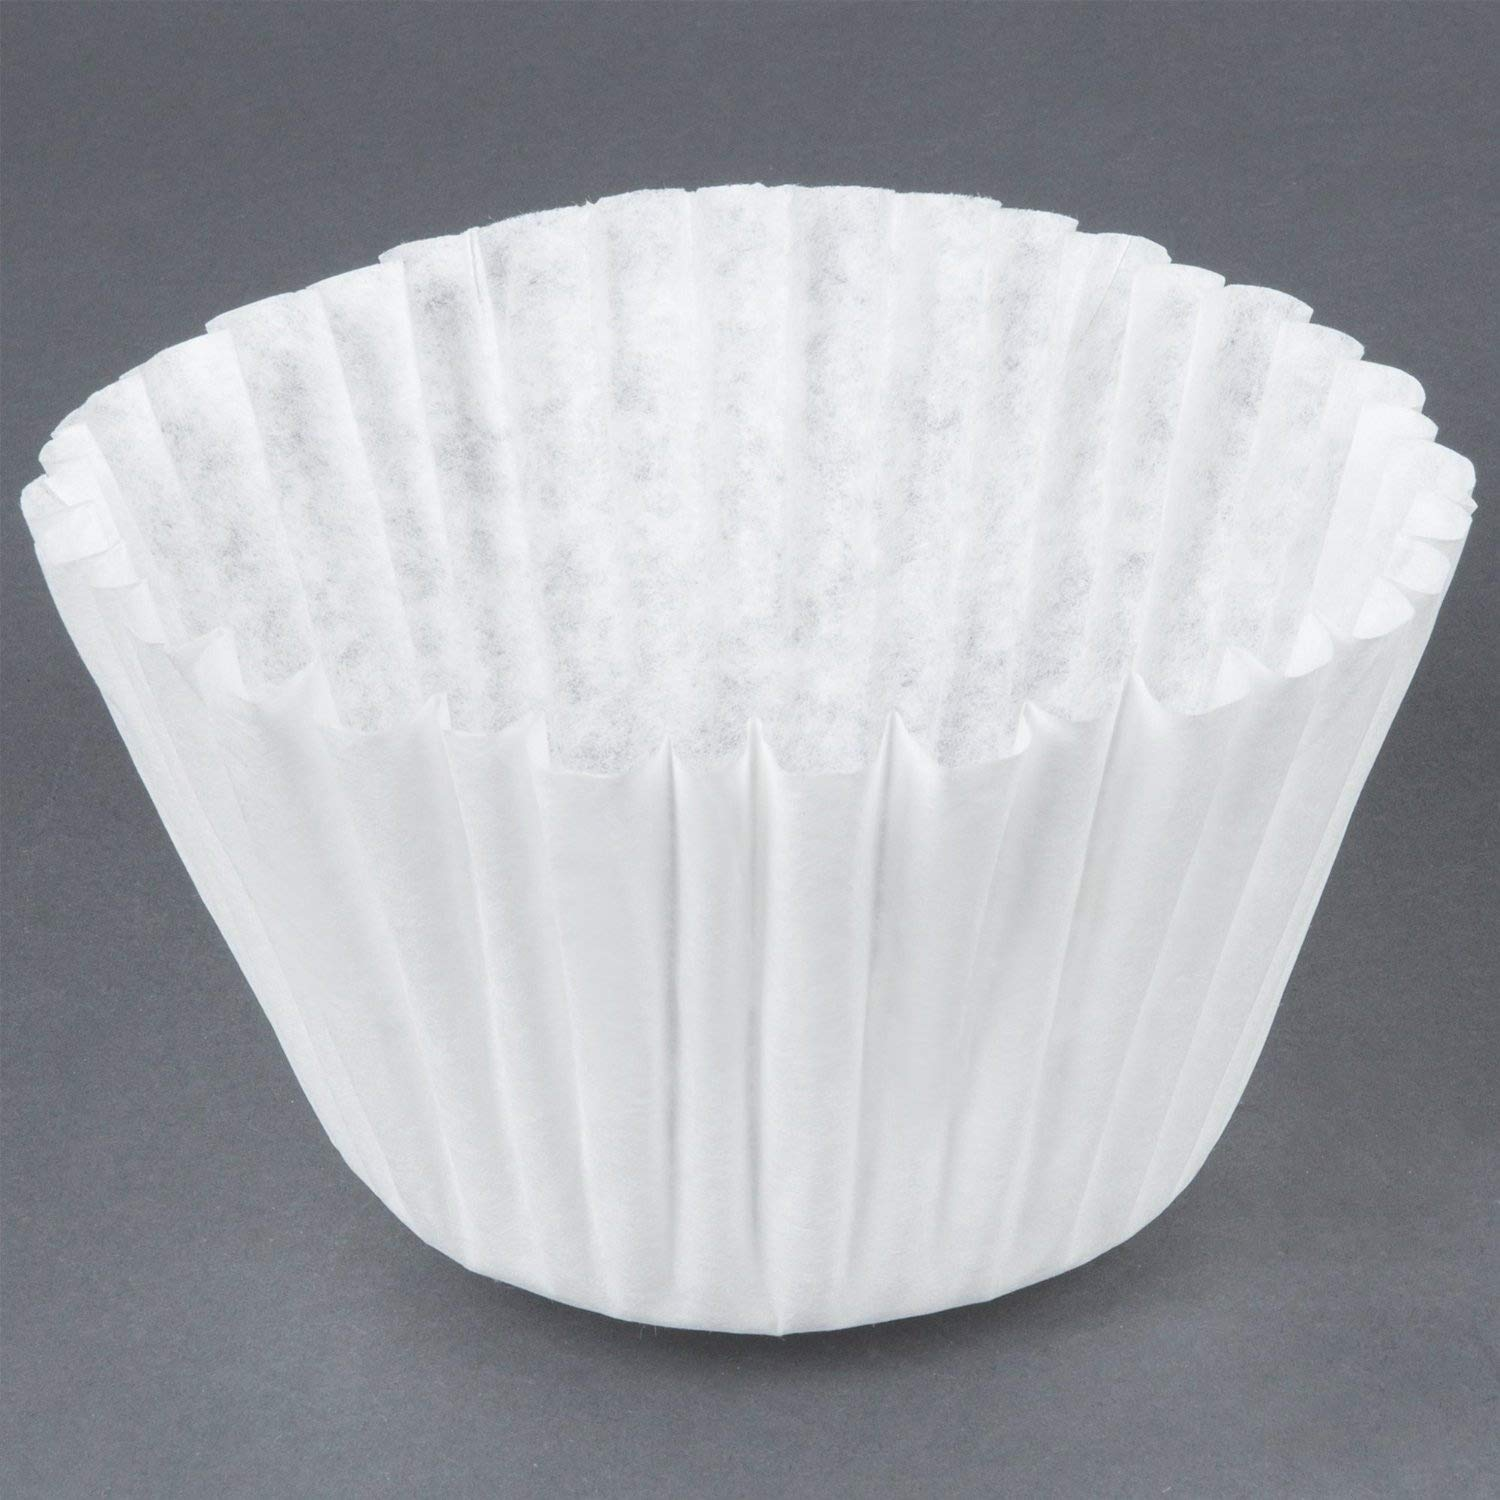 "Bunn 20138.1000 13 3/4"" x 5 1/4"" 1.5 Gallon Coffee Filter - 500/Case"